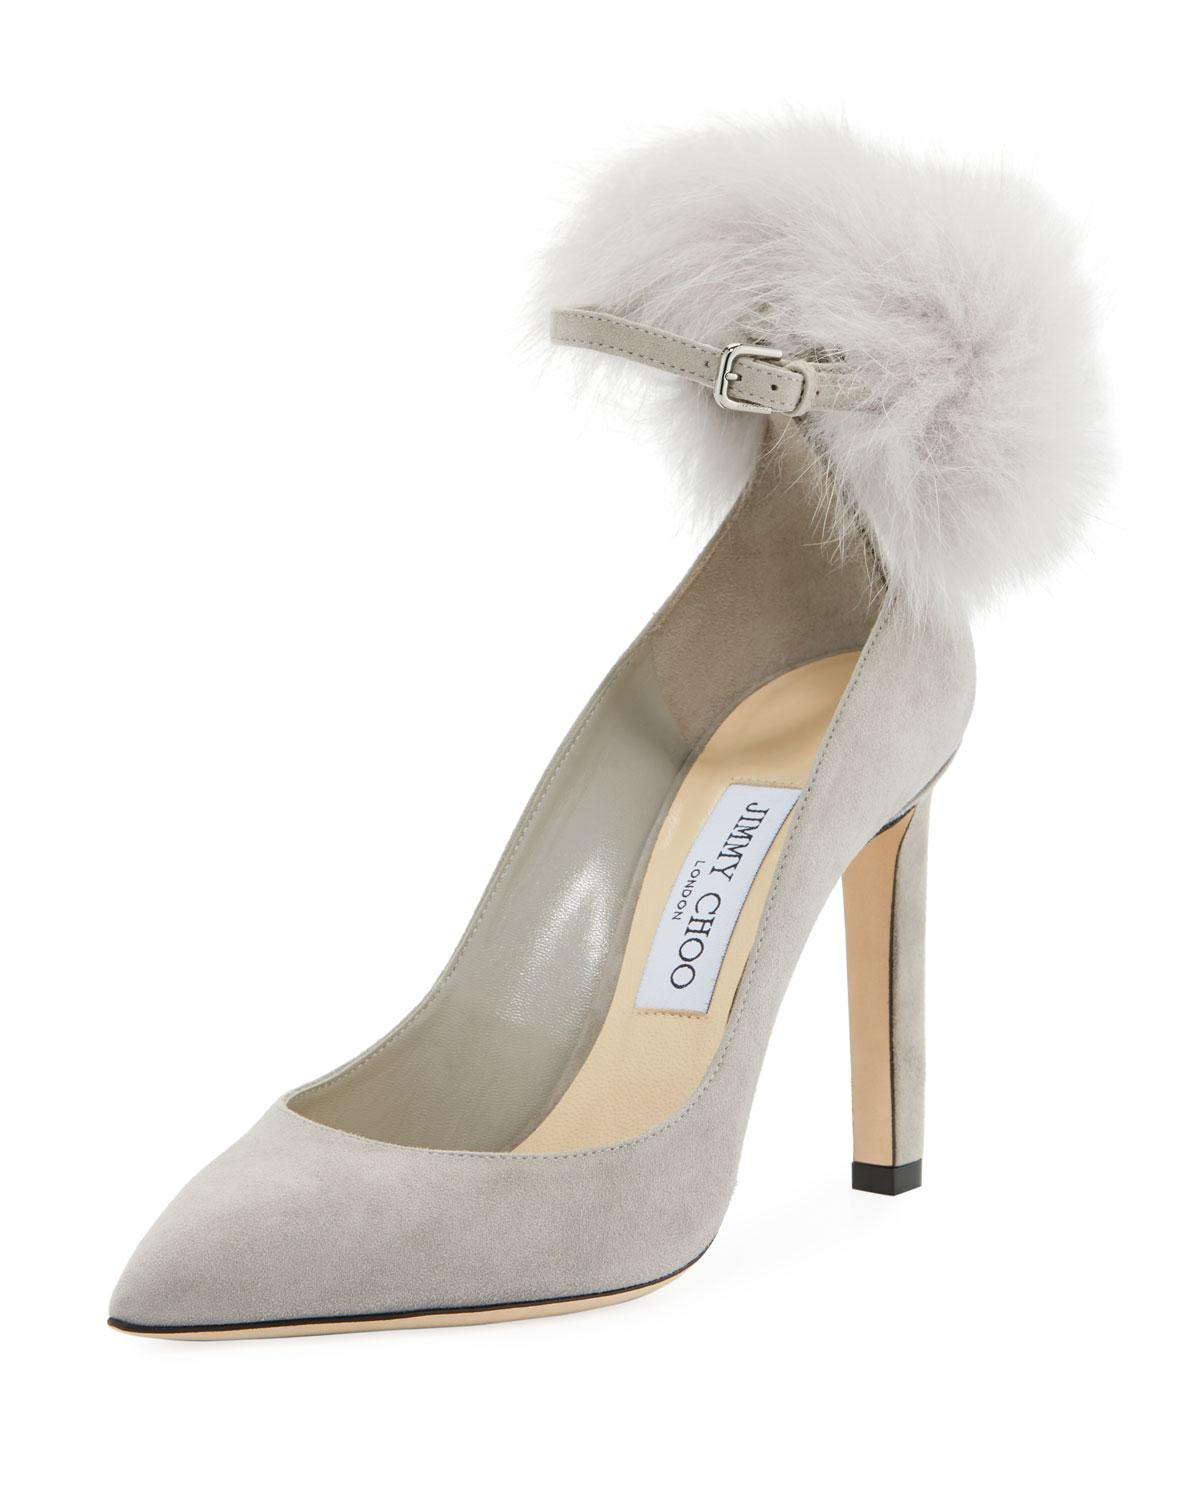 6740ddb81a95 Jimmy Choo - Multicolor South Suede Fur Pompom Pumps - Lyst. View fullscreen